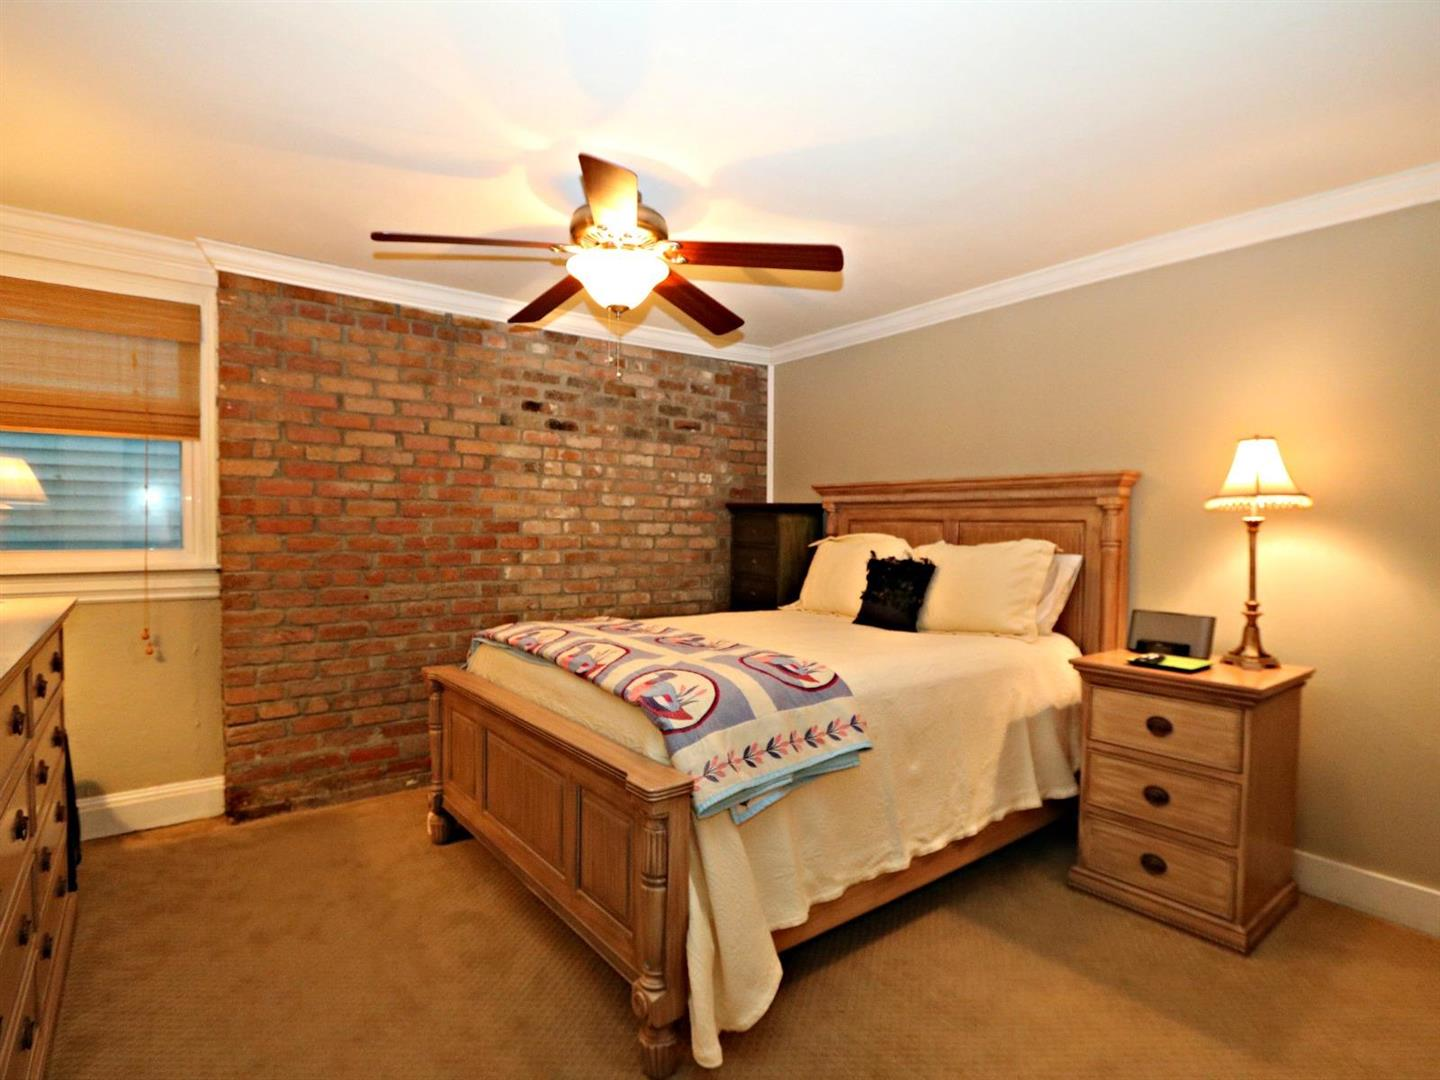 4716AnnunciationSt.CondosBedroom.jpg